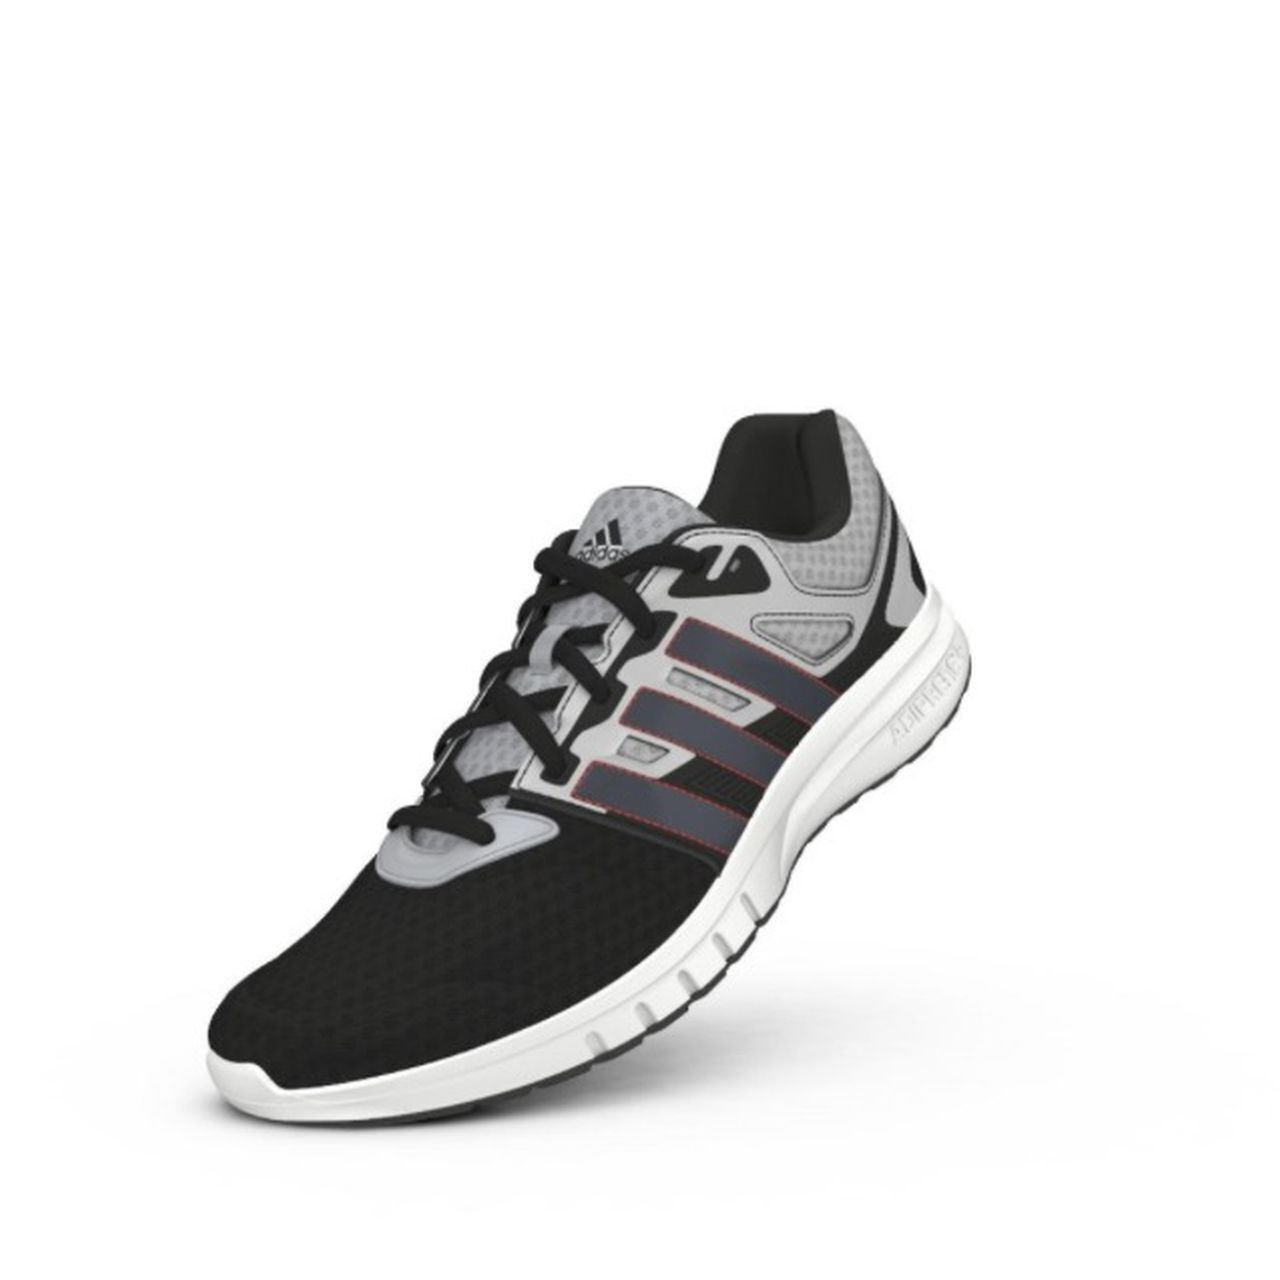 on sale 78401 82af0 Adidas Hombre Galaxy 2 m m m Athletic Shoes Casual salvaje 21c0b7